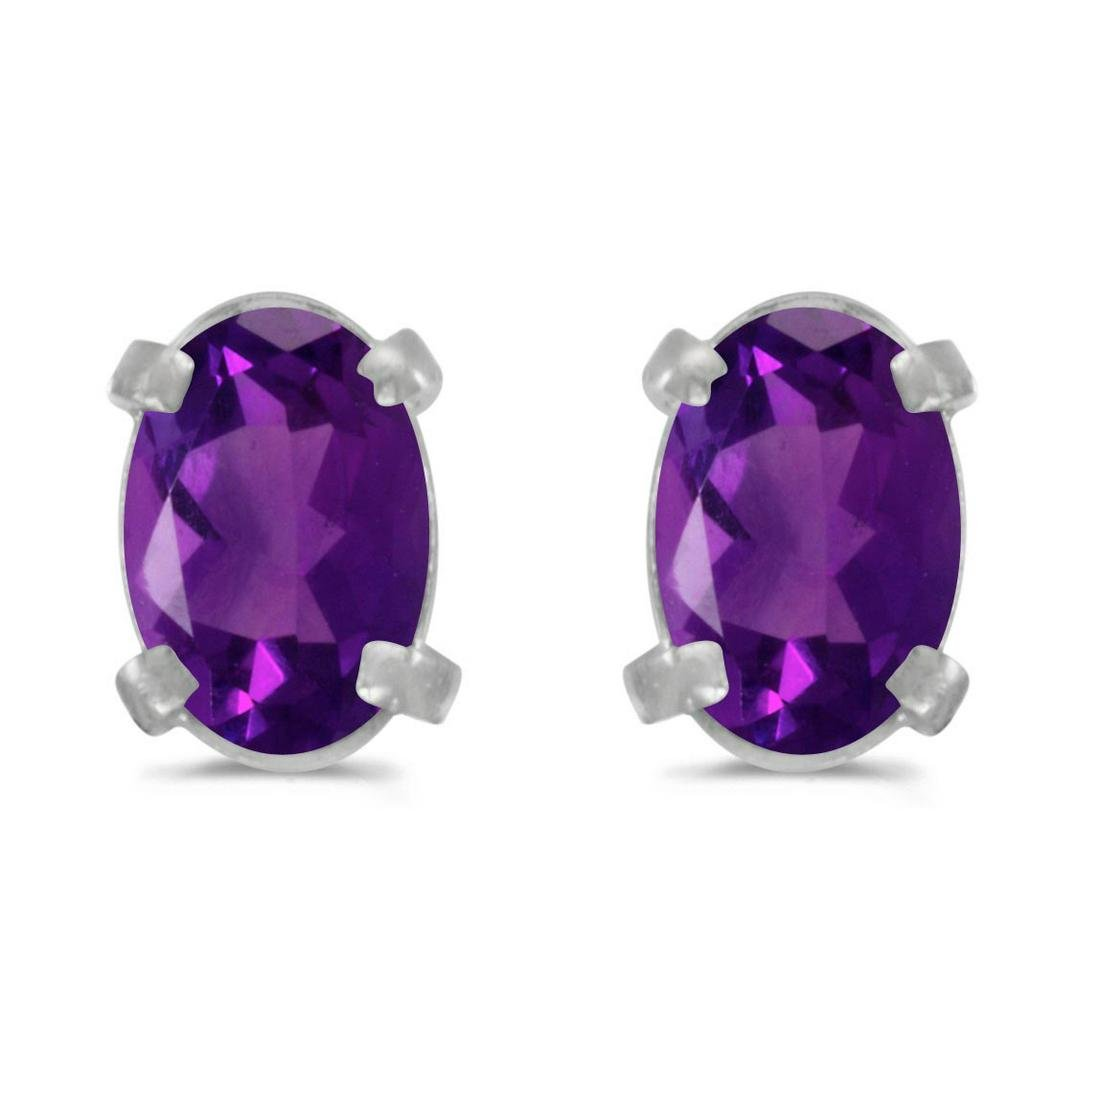 Certified 14k White Gold Oval Amethyst Earrings 0.68 CT